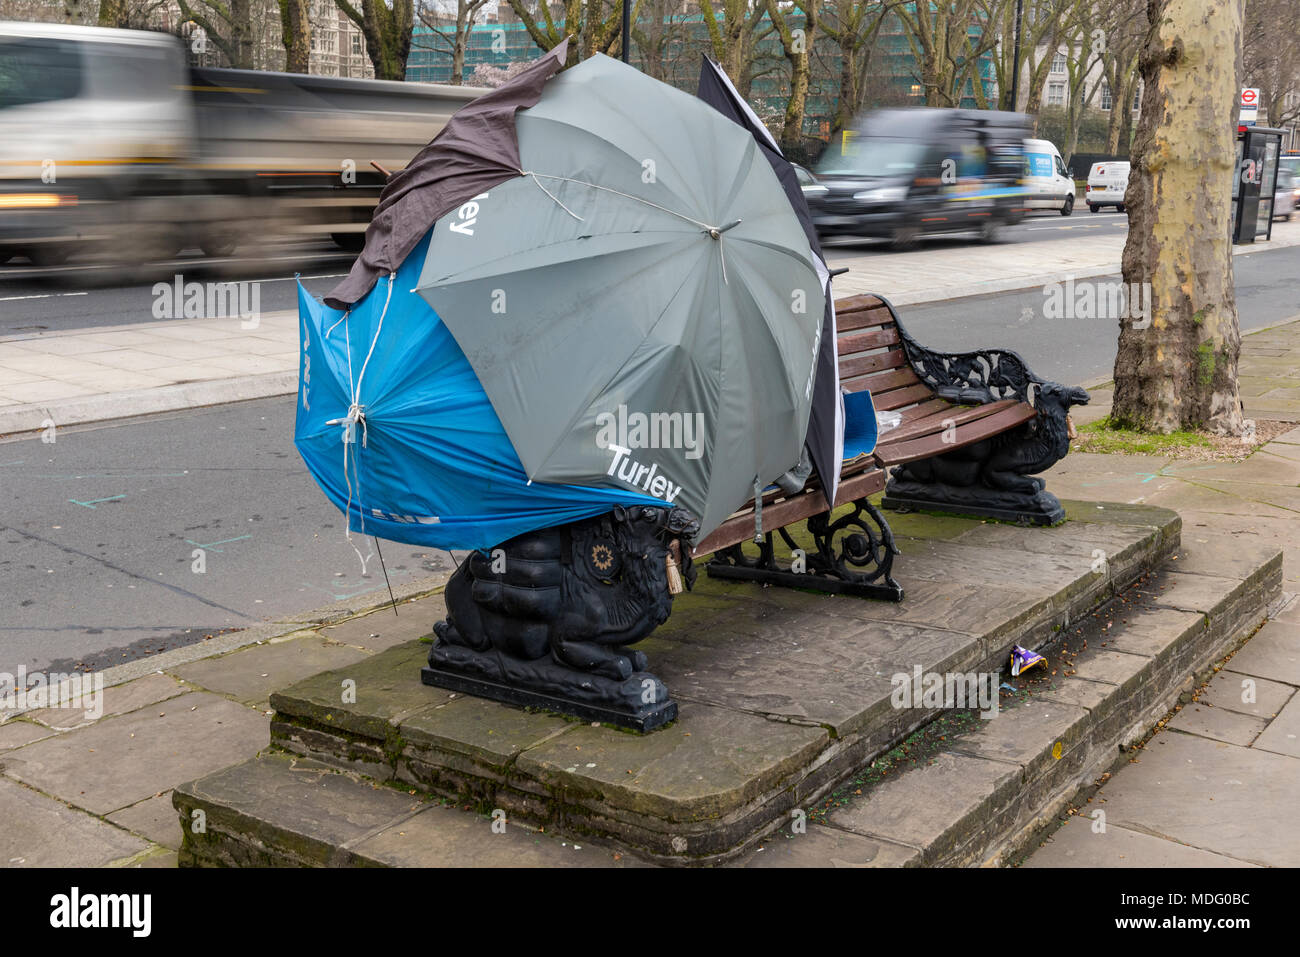 a makeshift shelter for a homeless person on a bench on the north bank of the river thames in central london. umbrellas made into a tent as a shelter. - Stock Image